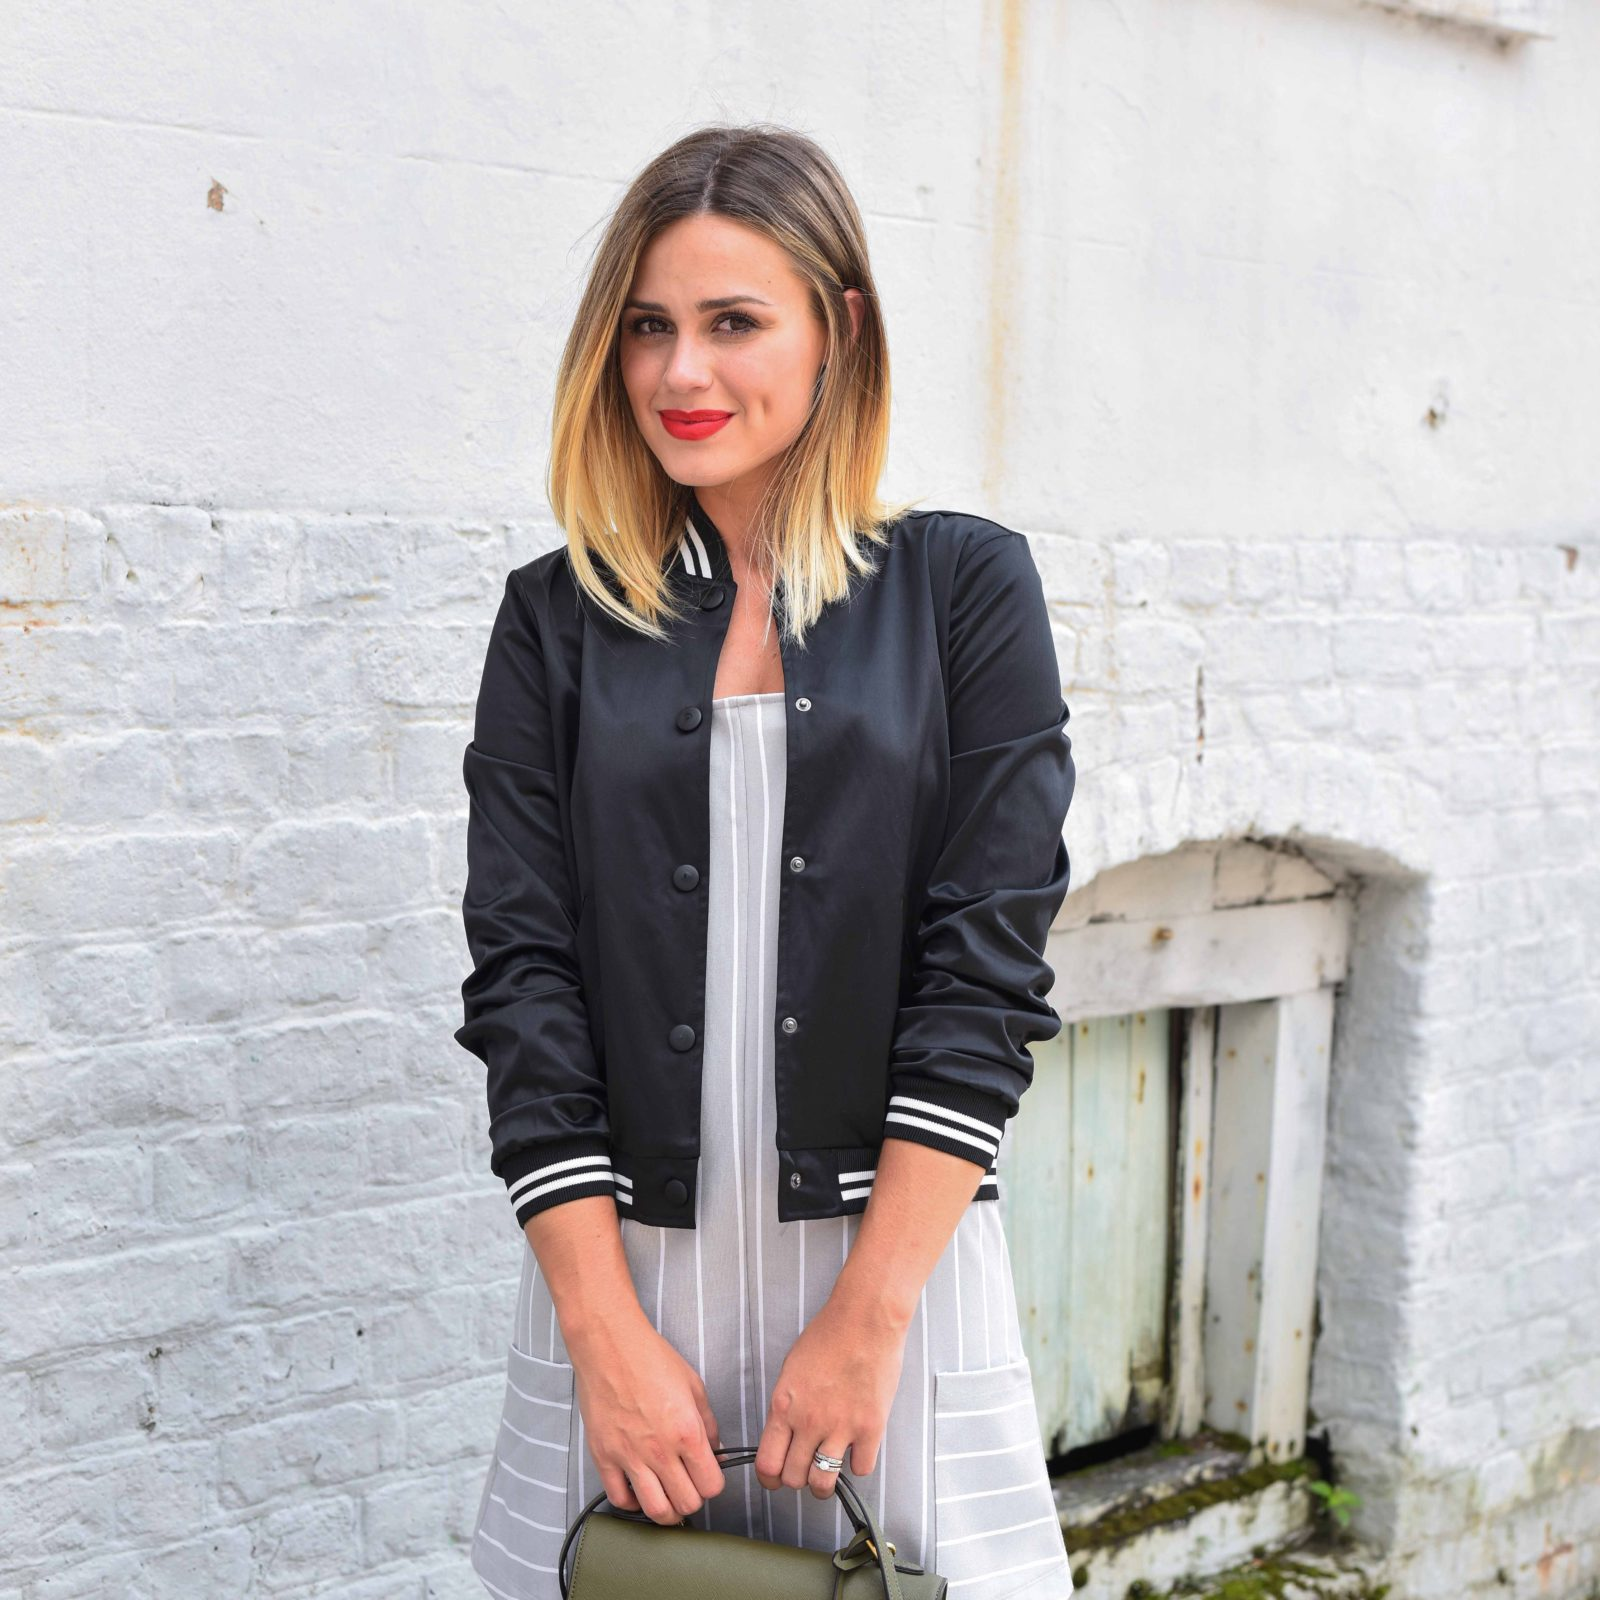 How to wear a Bomber Jacket   Bomber Jackets under $100   Mommy Street Style   Uptown with Elly Brown